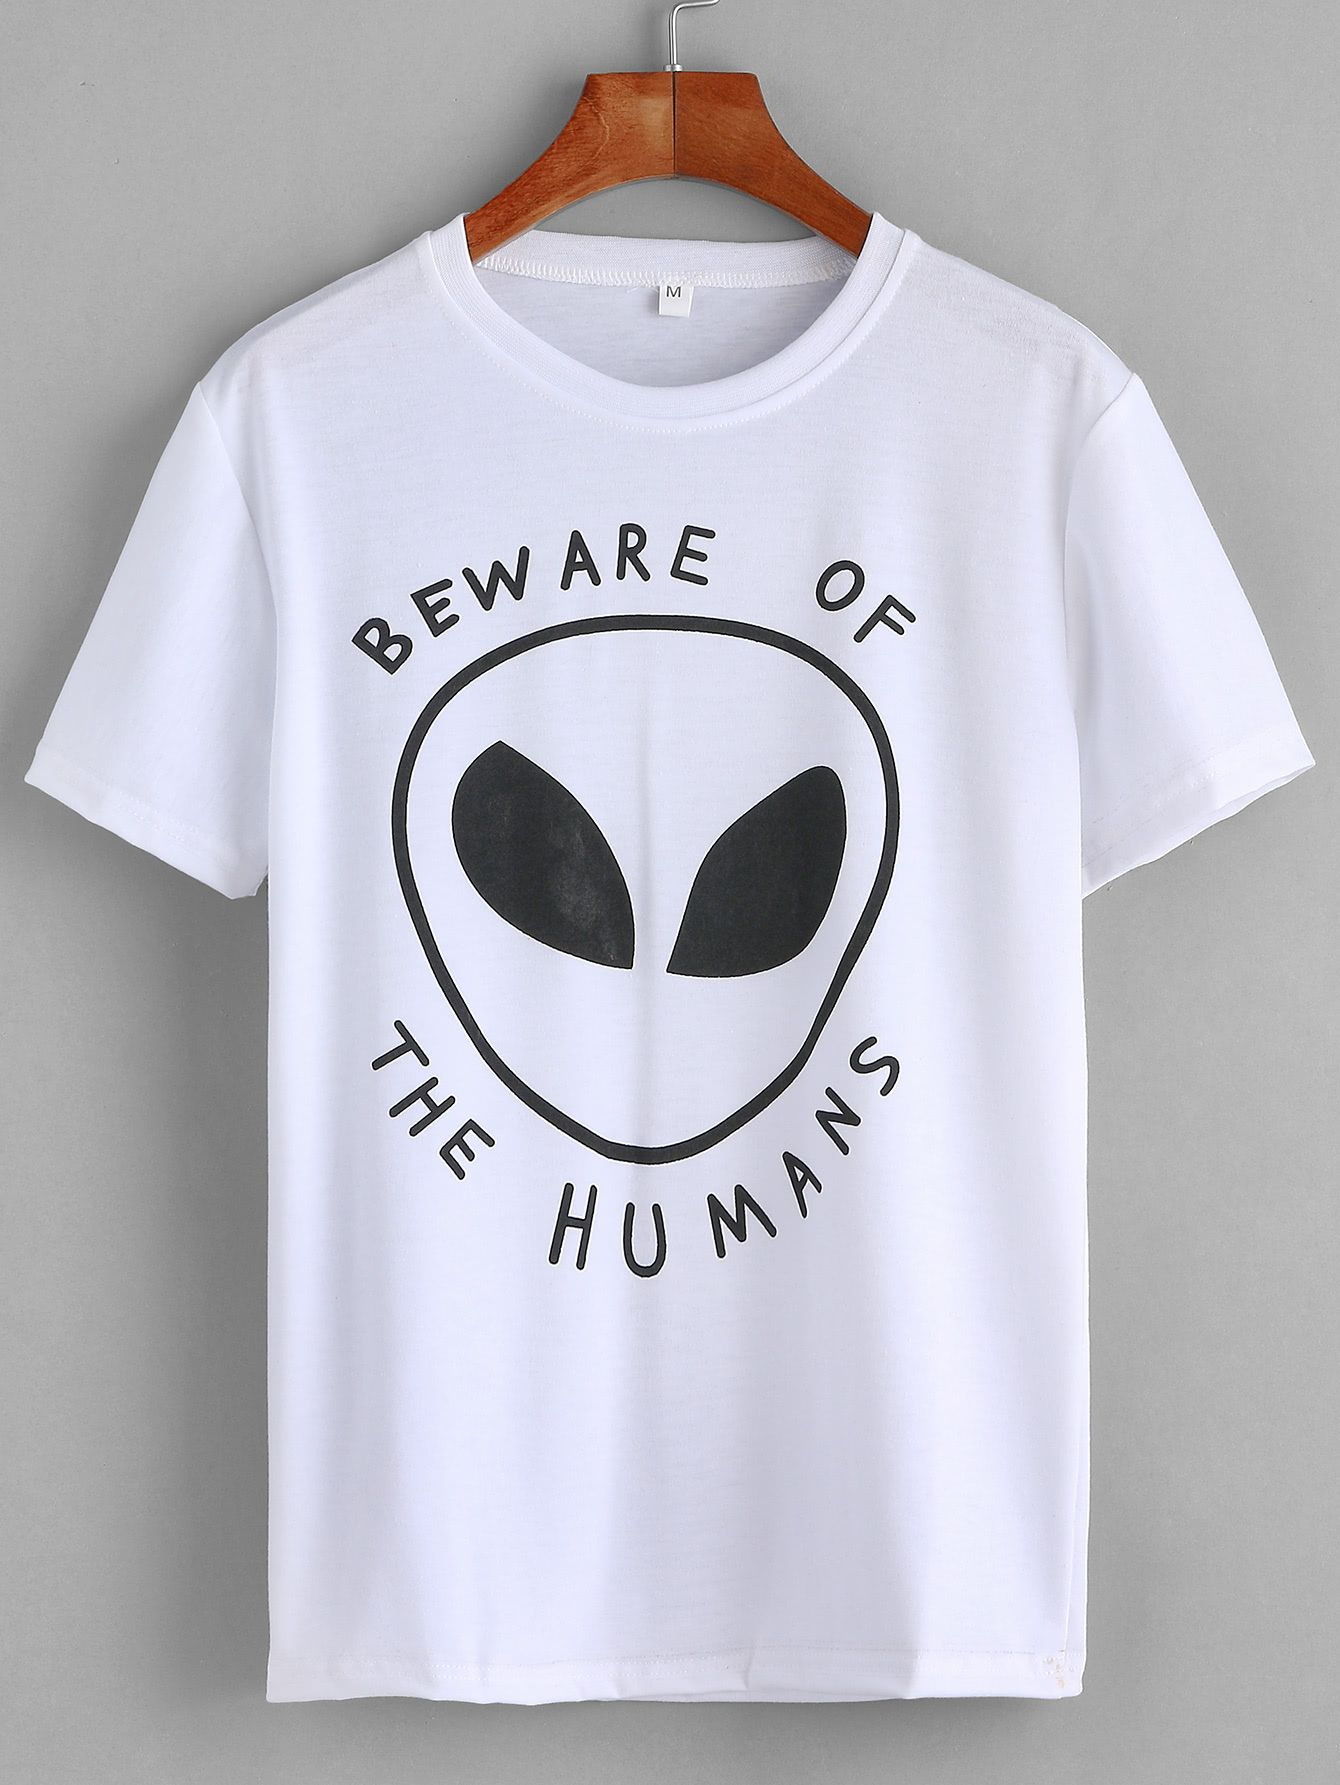 c68e677db6 Shop White Alien Print T-shirt online. SheIn offers White Alien Print T- shirt & more to fit your fashionable needs.